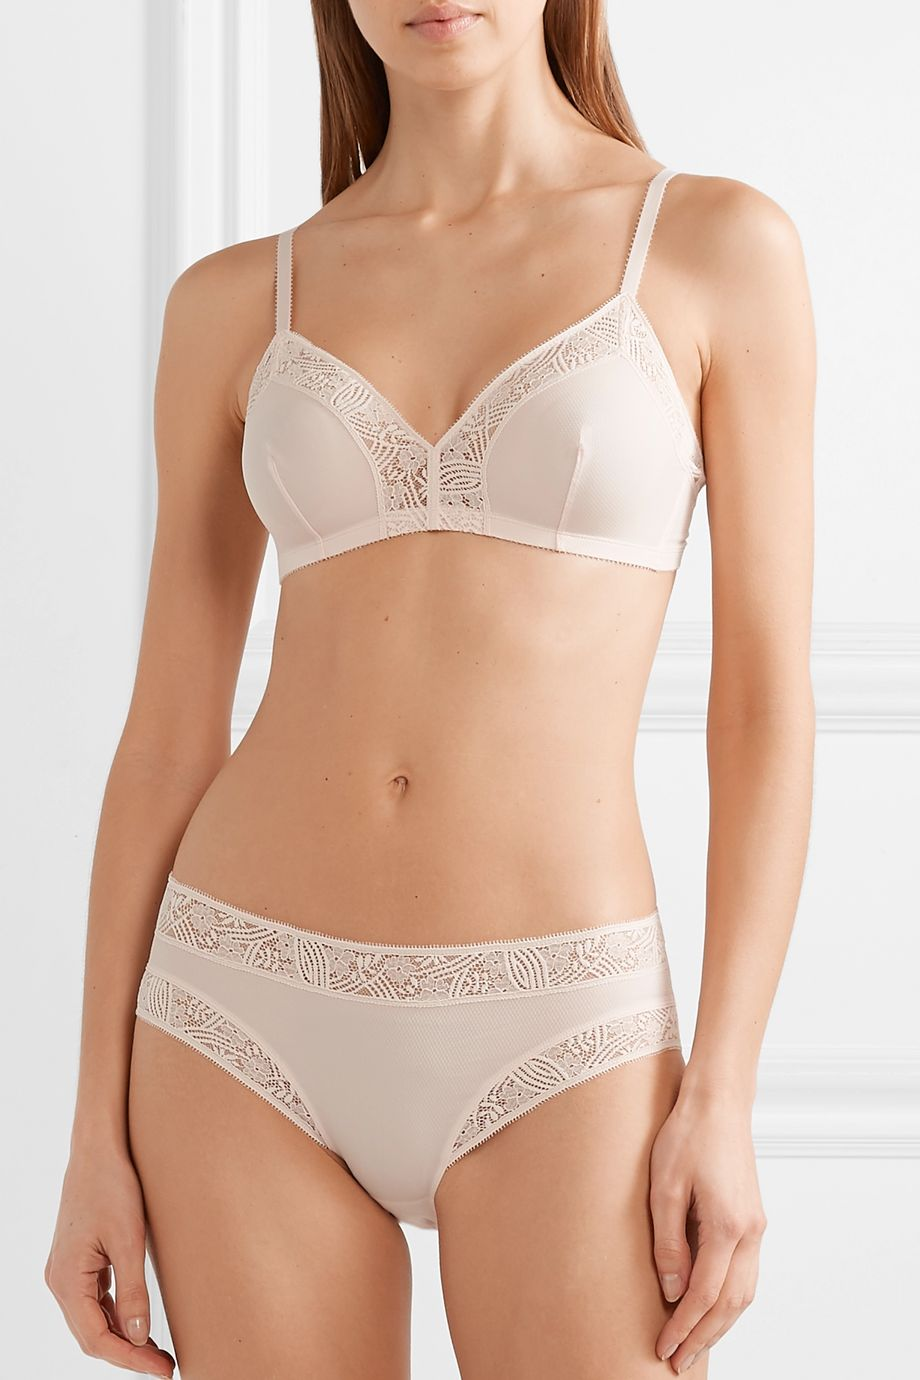 Eres Merveilles Charme lace-trimmed textured stretch-jersey soft-cup triangle bra